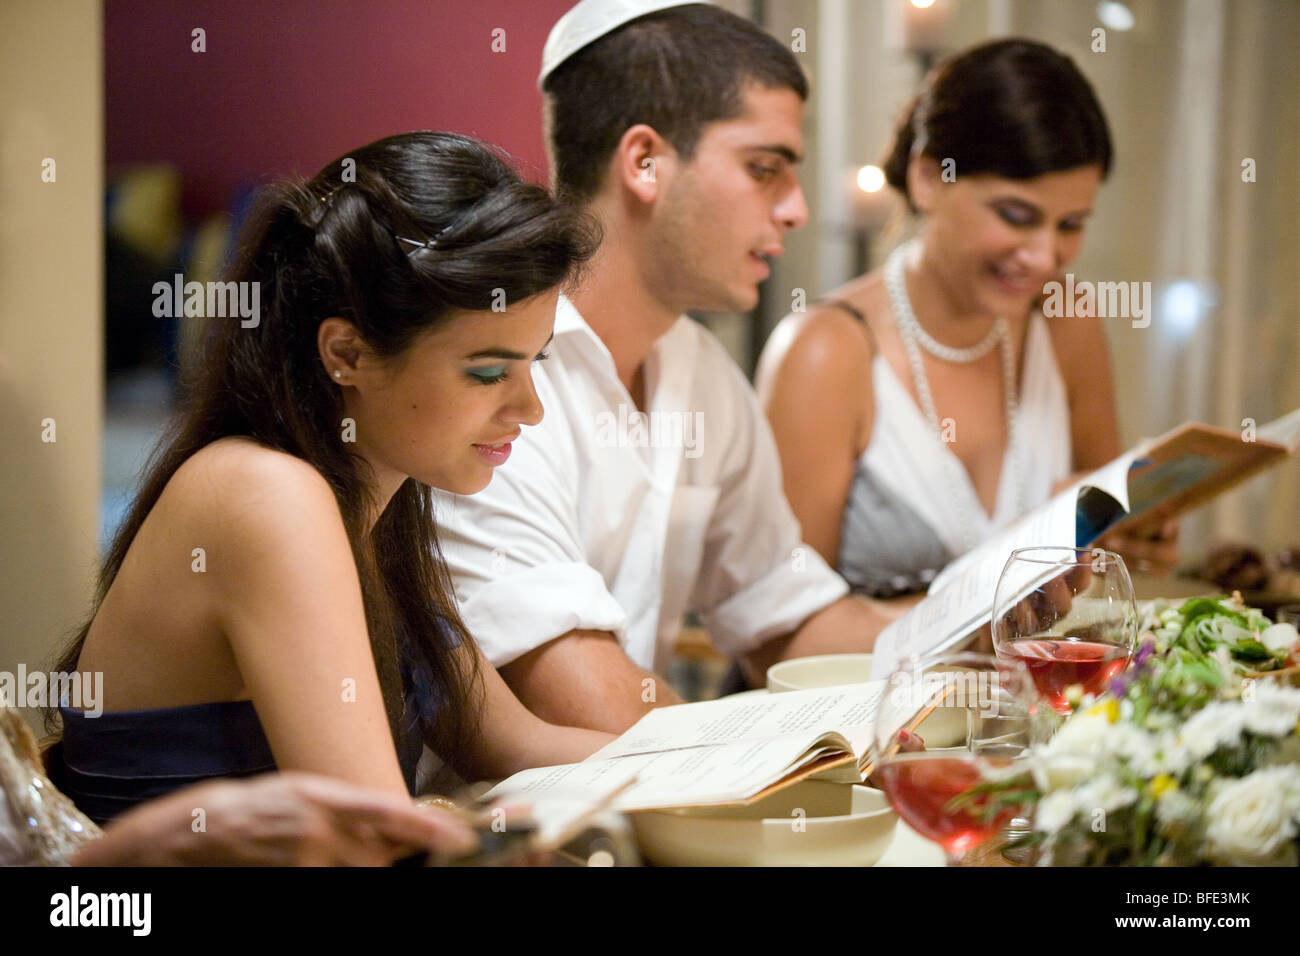 Reading the Haggadah. - Stock Image